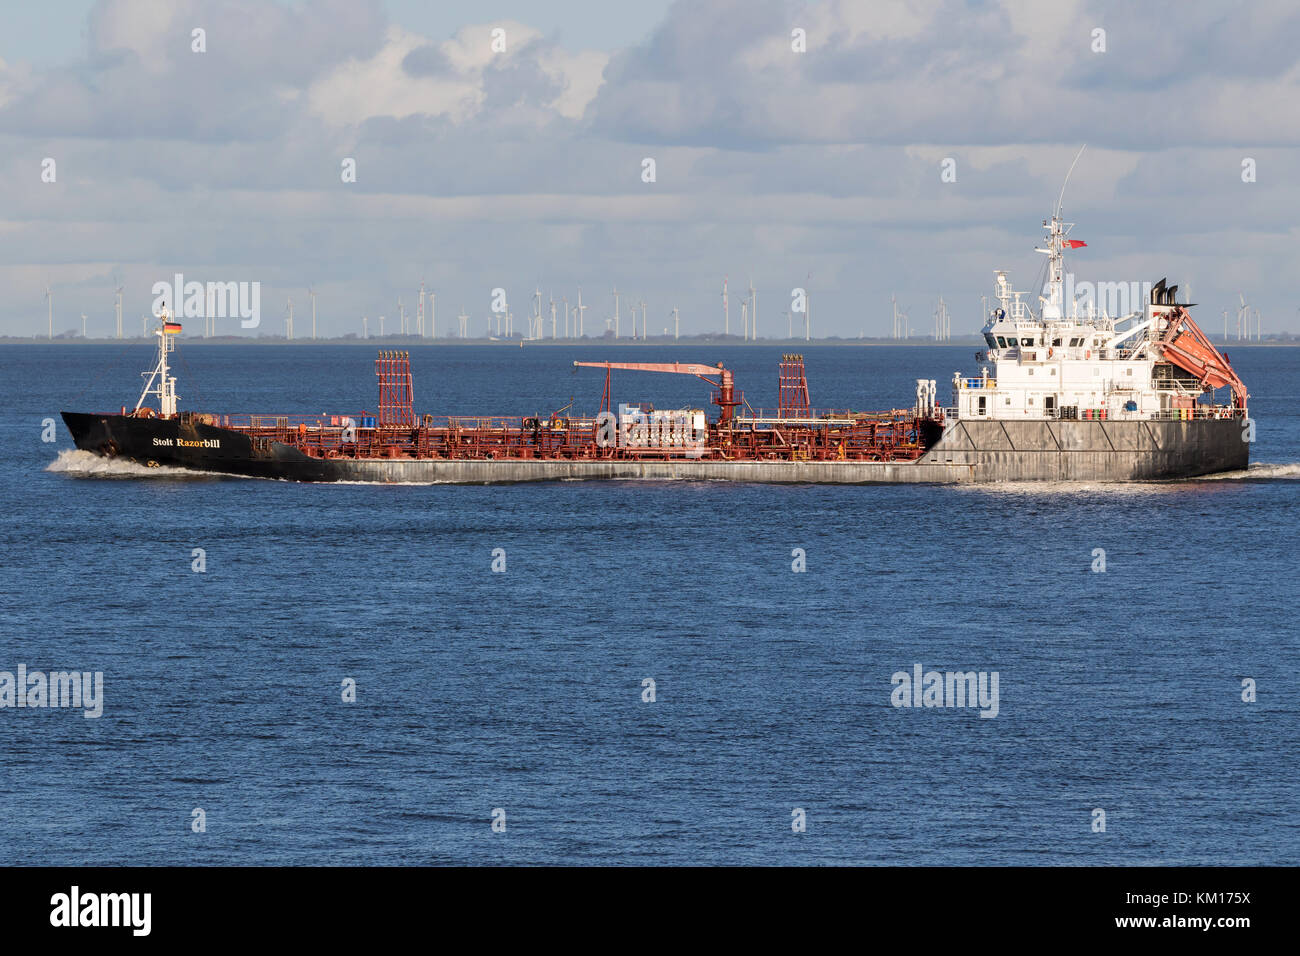 Worlds Largest Tanker Stock Photos & Worlds Largest Tanker Stock